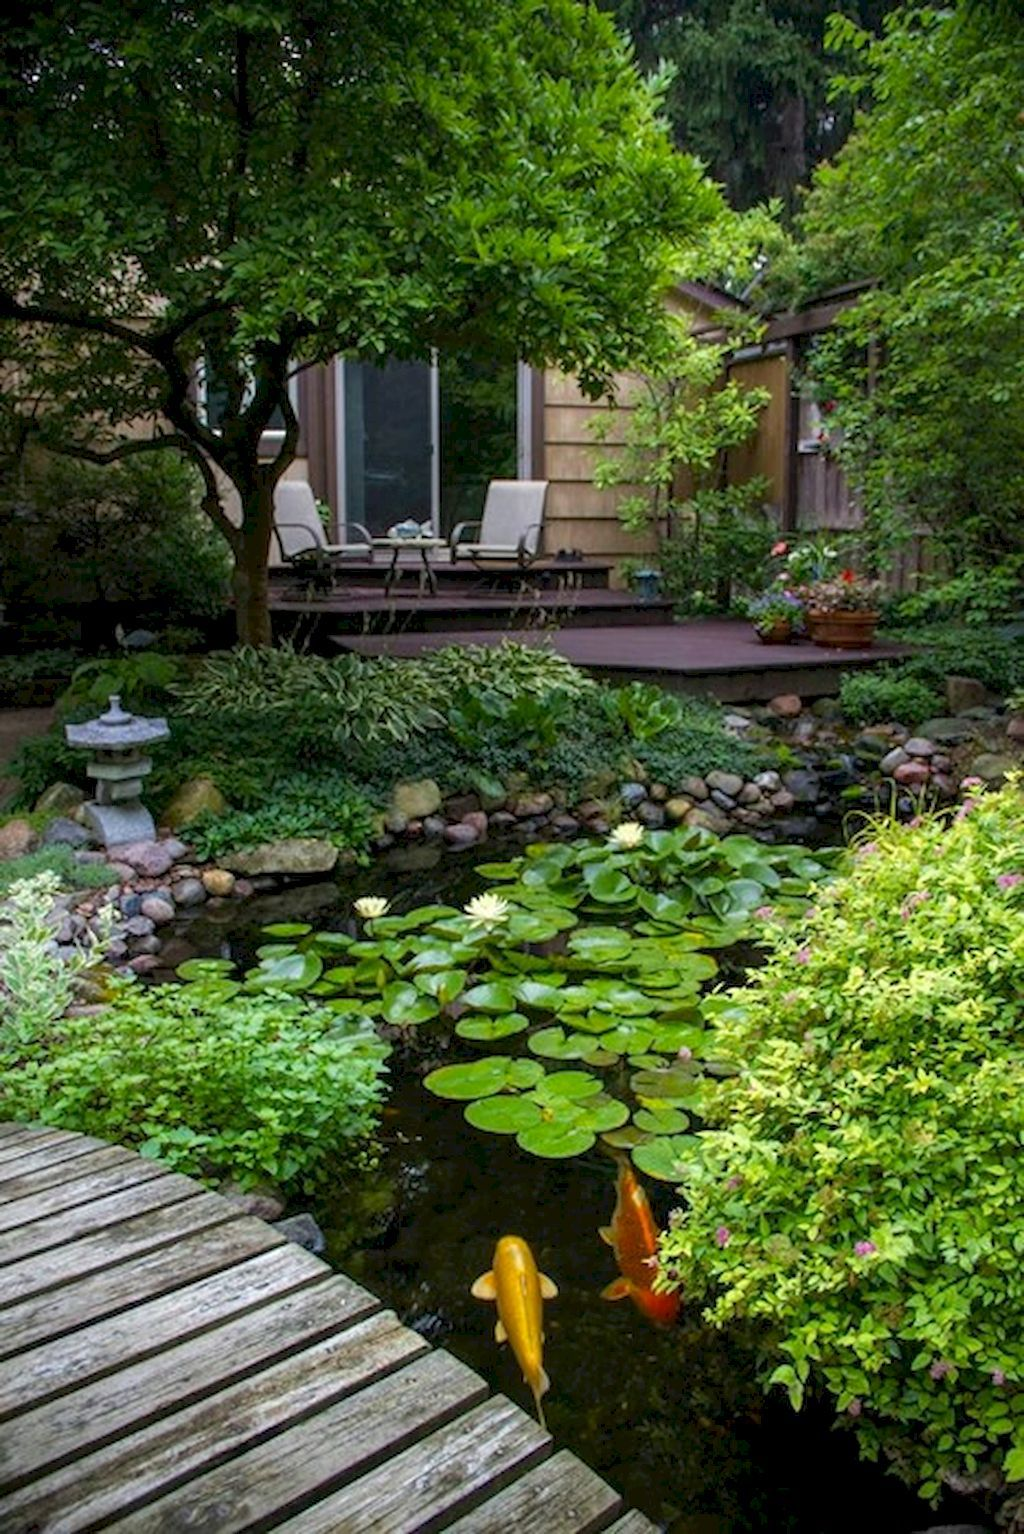 The 20 Best DIY Fun Landscaping Ideas For Your Dream Backyard